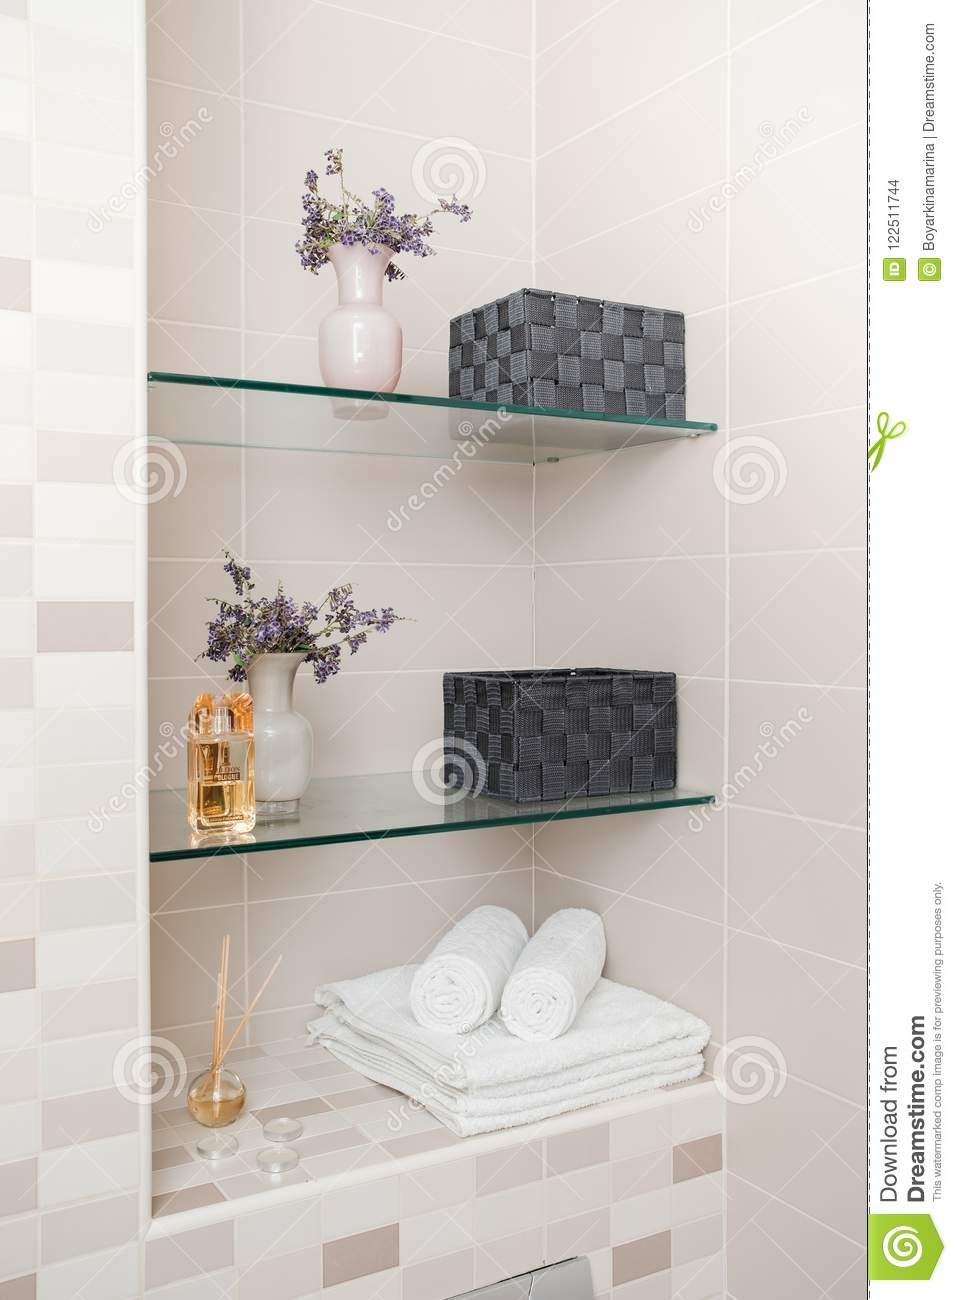 Clean Towels, Flowers And Spa Bath Cosmetic On Bathroom Stock Photo ...